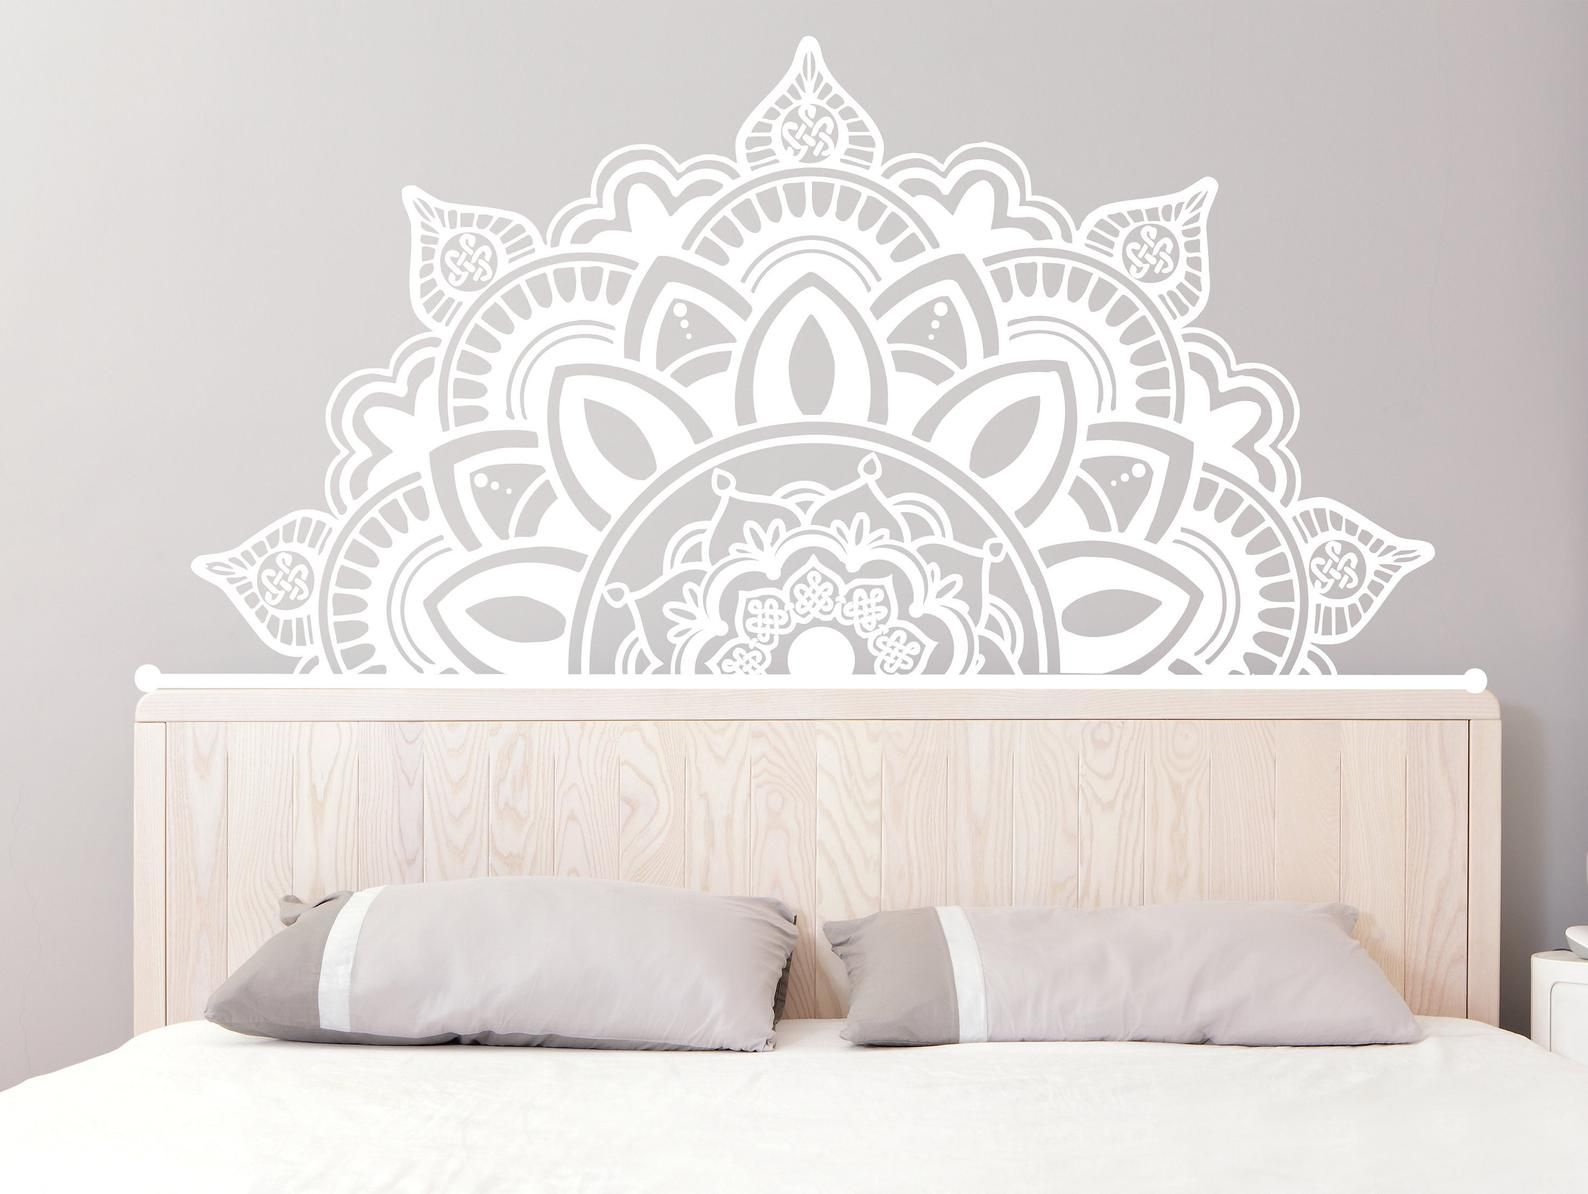 Half Mandala Wall Decals Headboard Vinyl Sticker Bohemian Boho Home Decor MS782